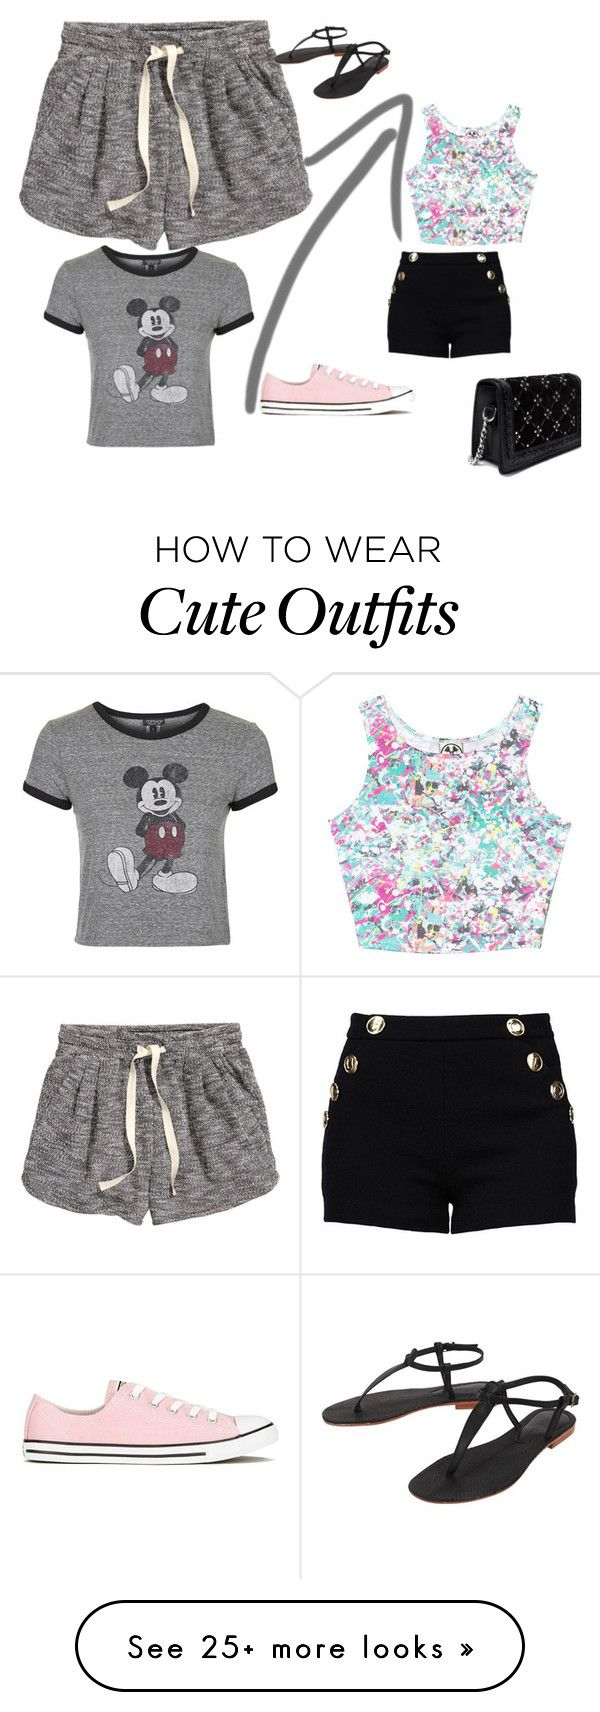 """""""Cute Outfit"""" by queenalisa on Polyvore featuring Civil, Boutique Moschino, H&M, Topshop, Converse, Cocobelle and Zara"""